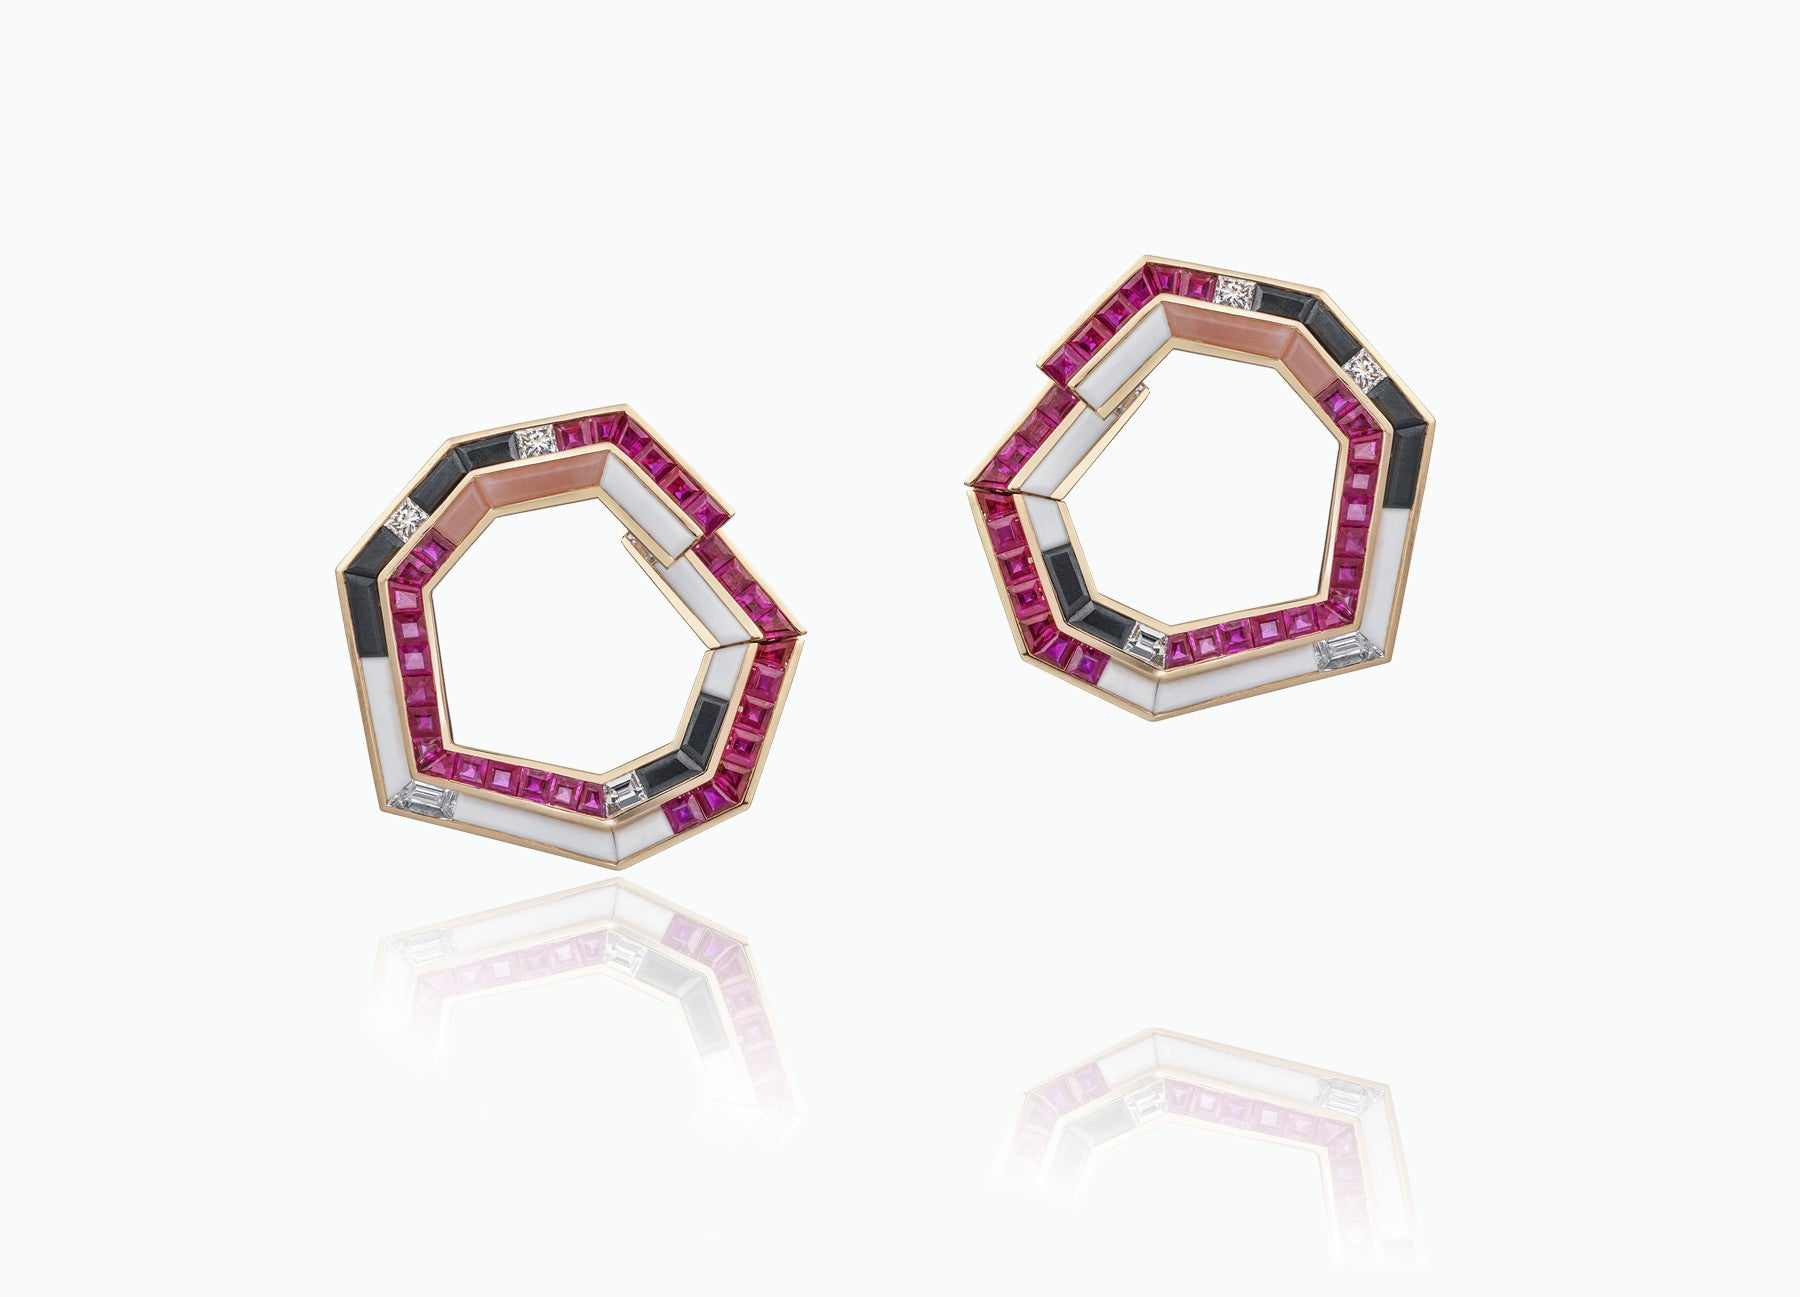 STELLAR HALO HOOPS EARRINGS